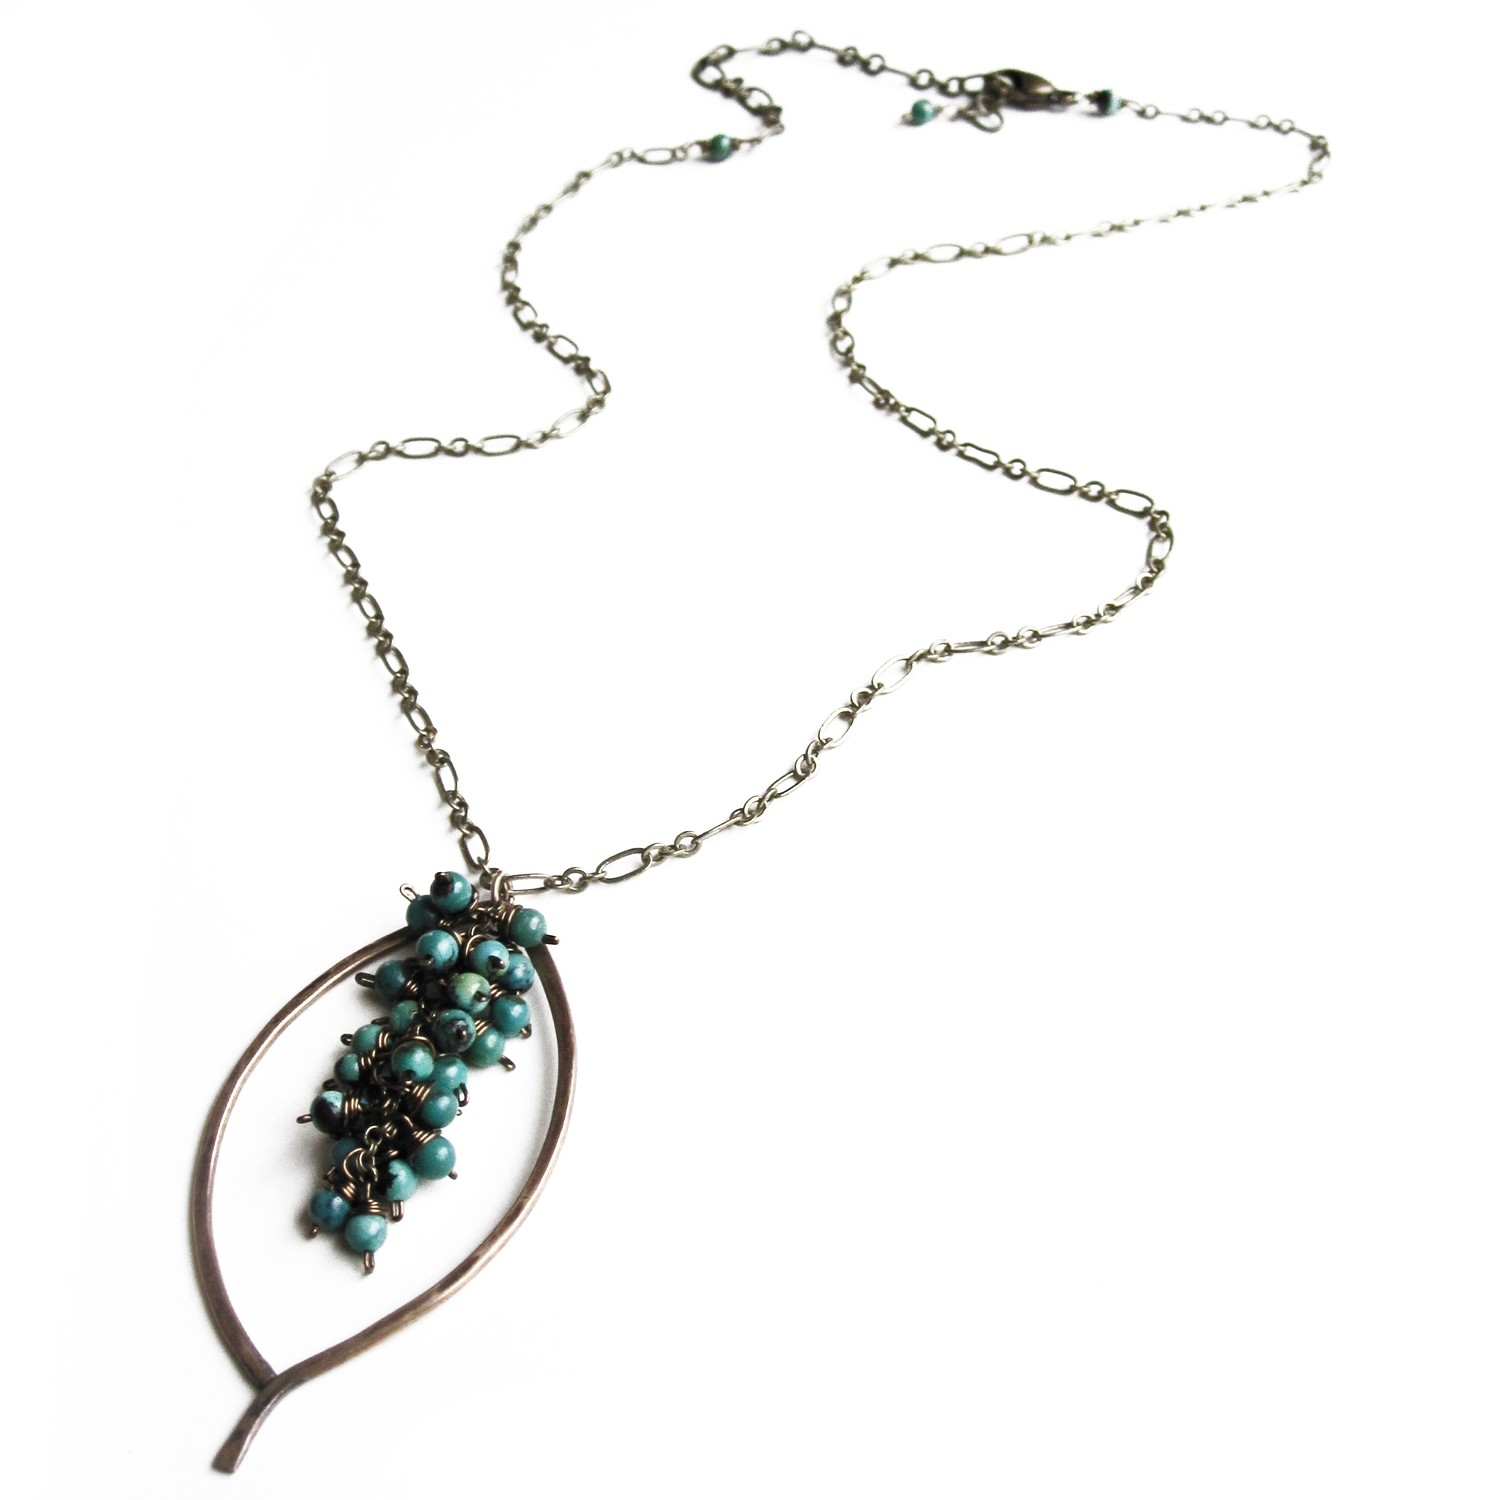 Leaf Chain Necklace - Bronze